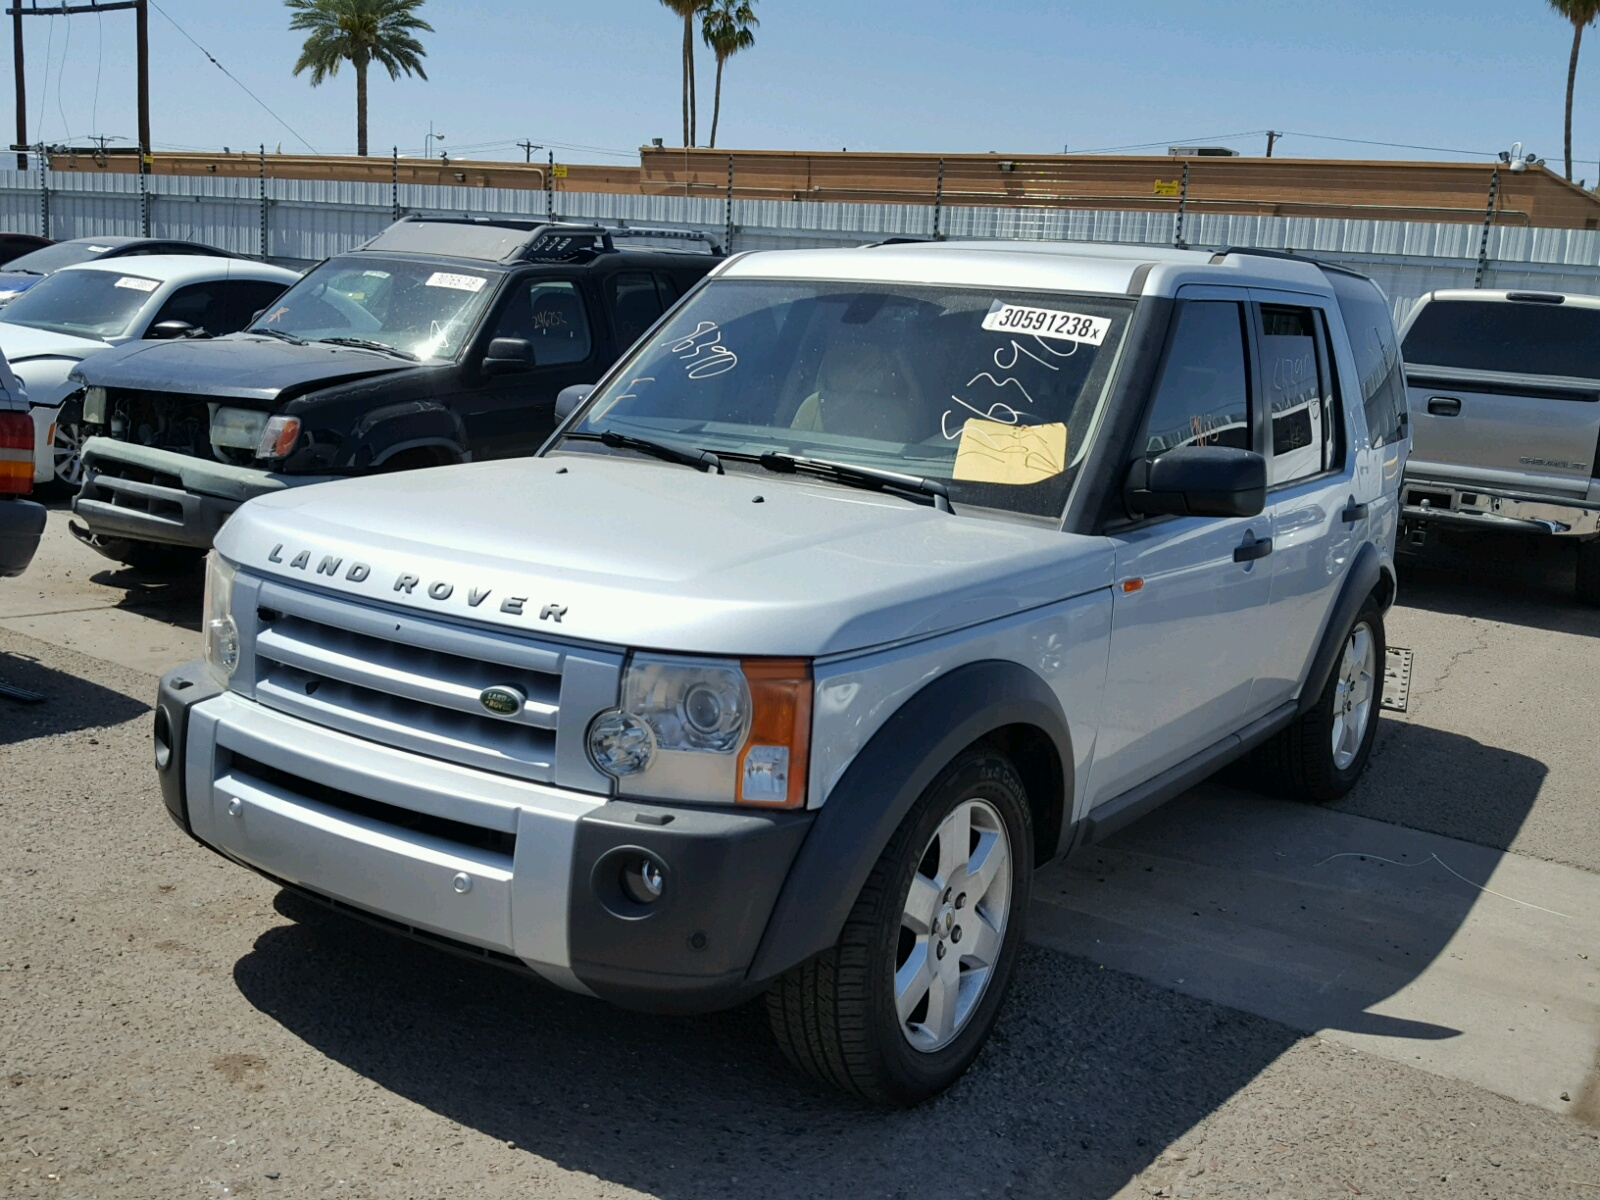 rover sale in landrover flood online en land lansing copart auctions mi for cert auto view carfinder title on vehicle gray right of lot hse